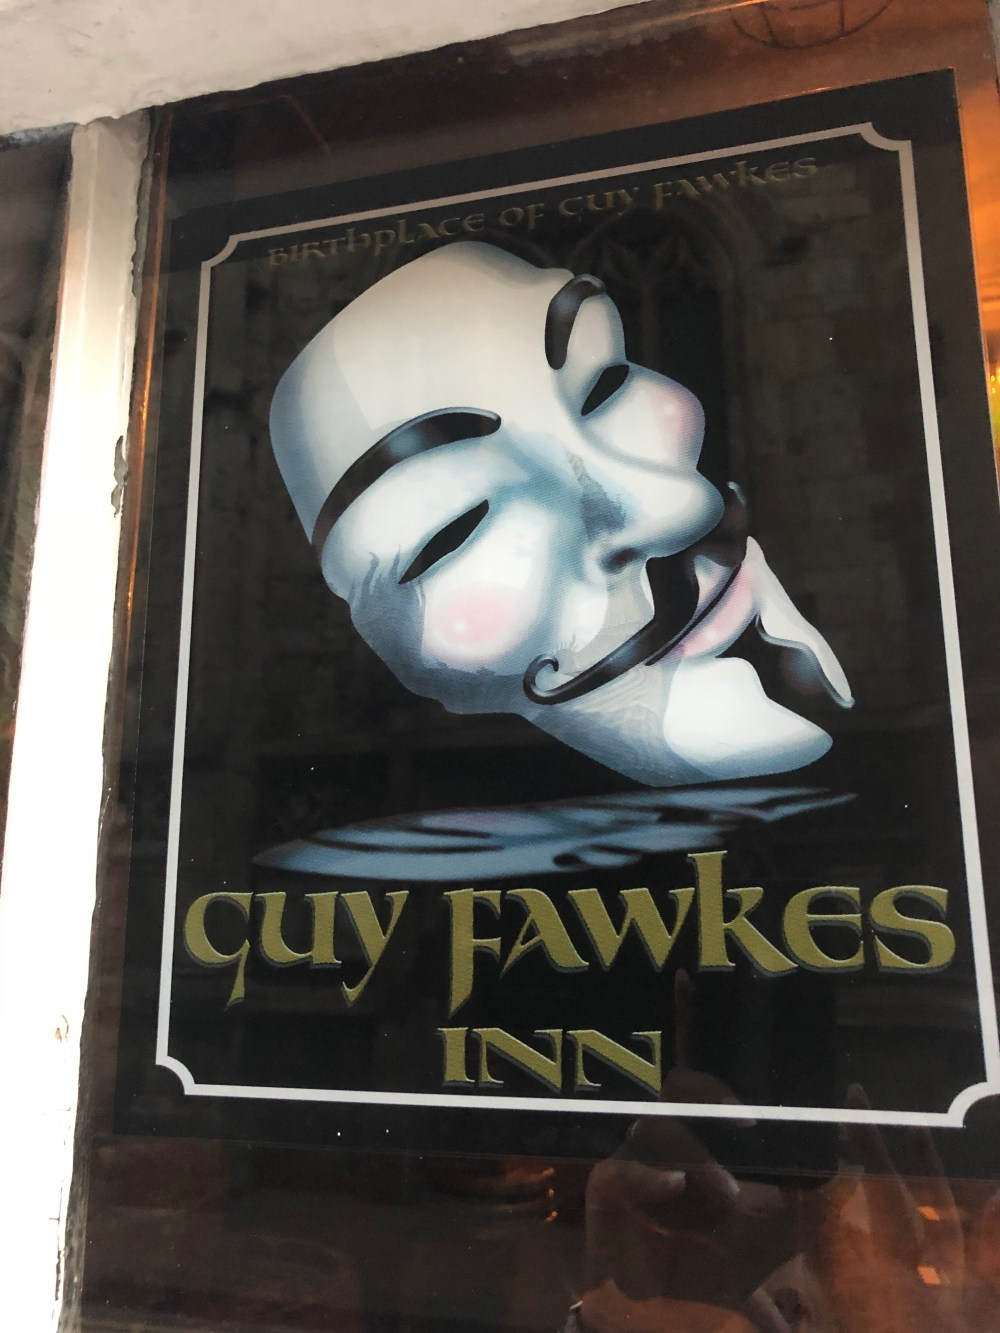 Guy Fawkes Inn, York, England